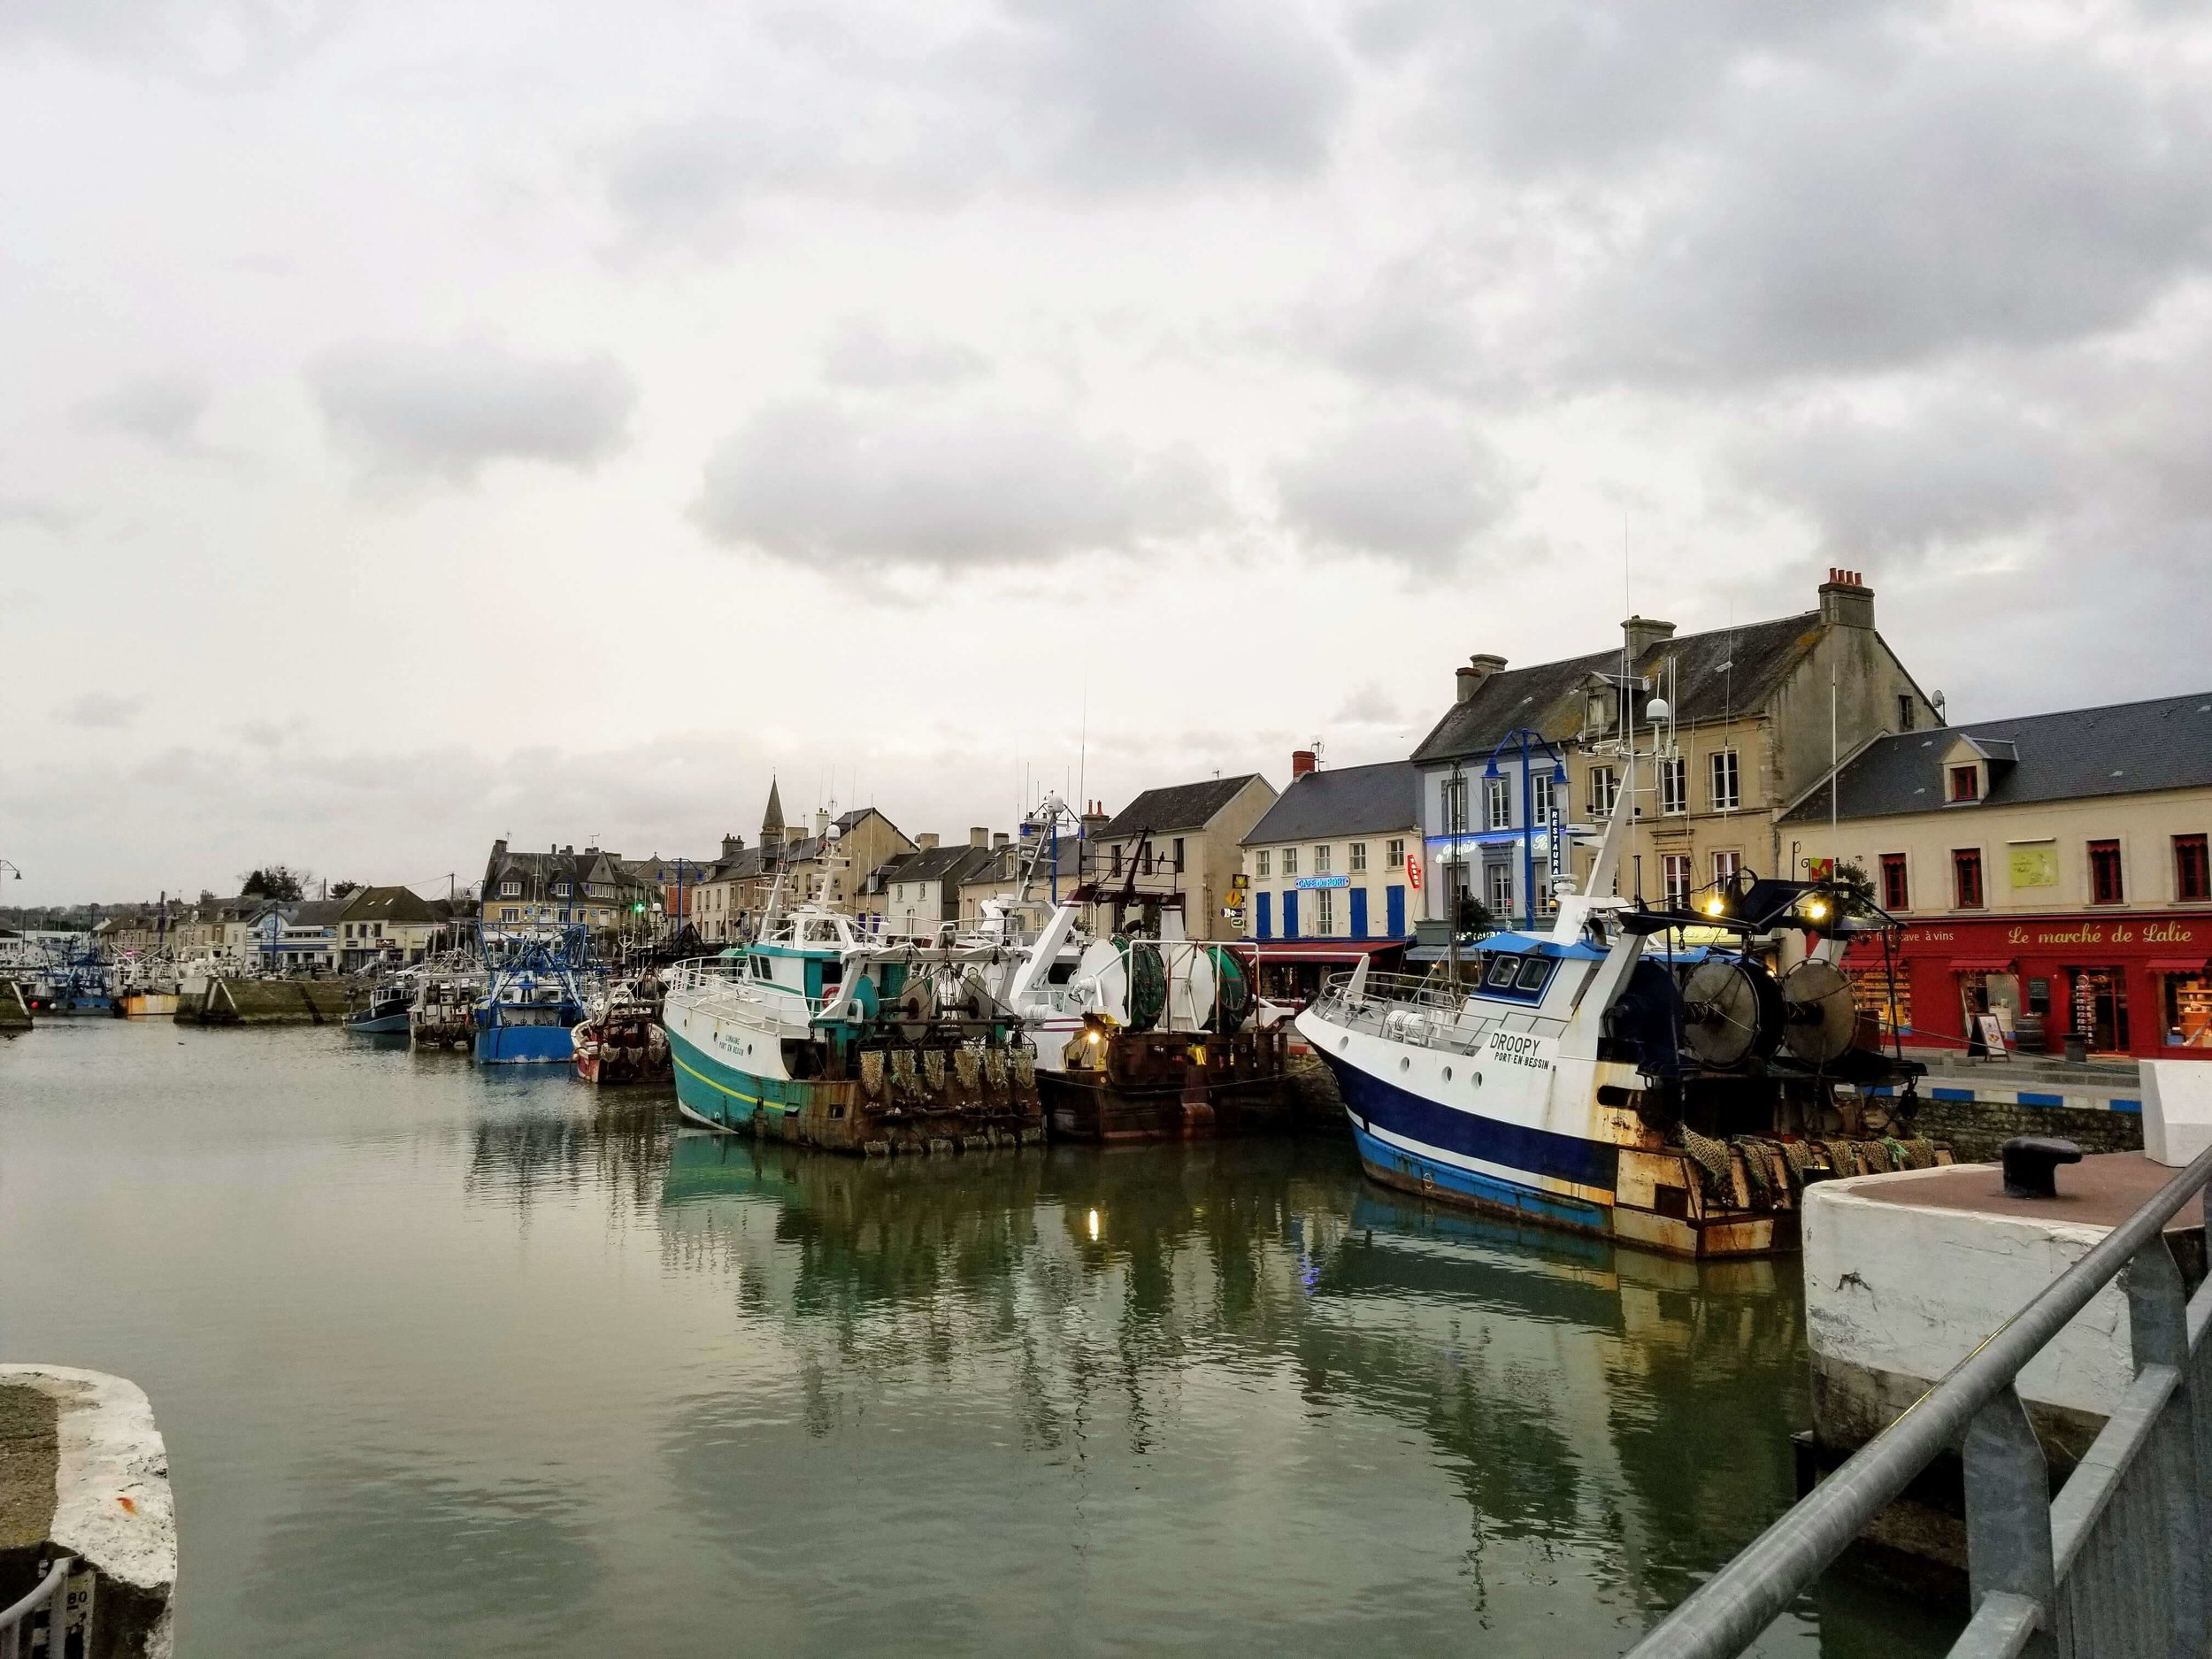 Lots of fishing boats in Port en Bessin